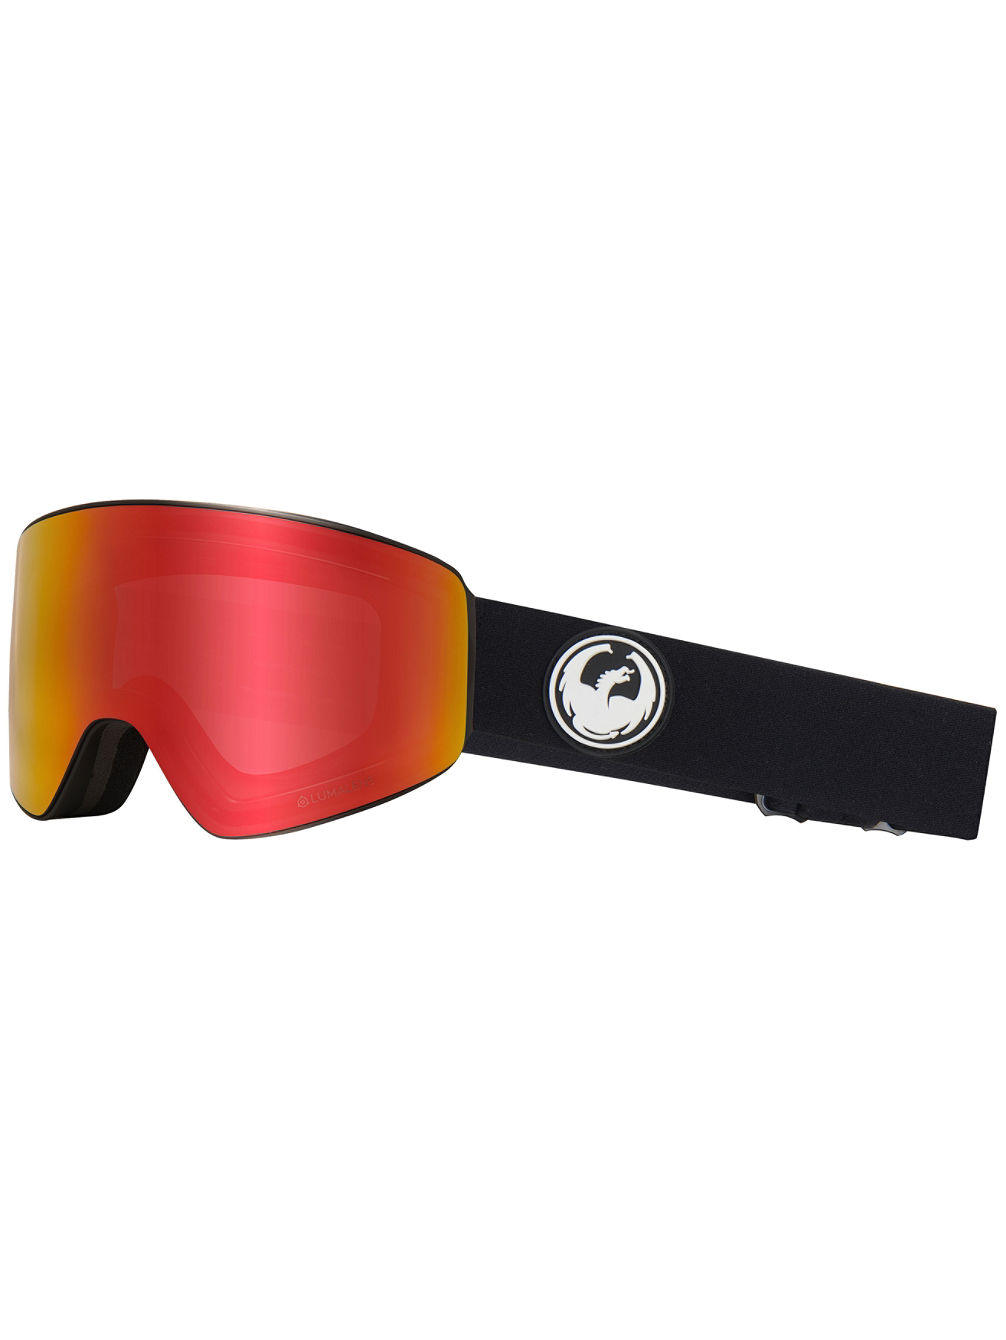 PXV Black ll red ion Goggle